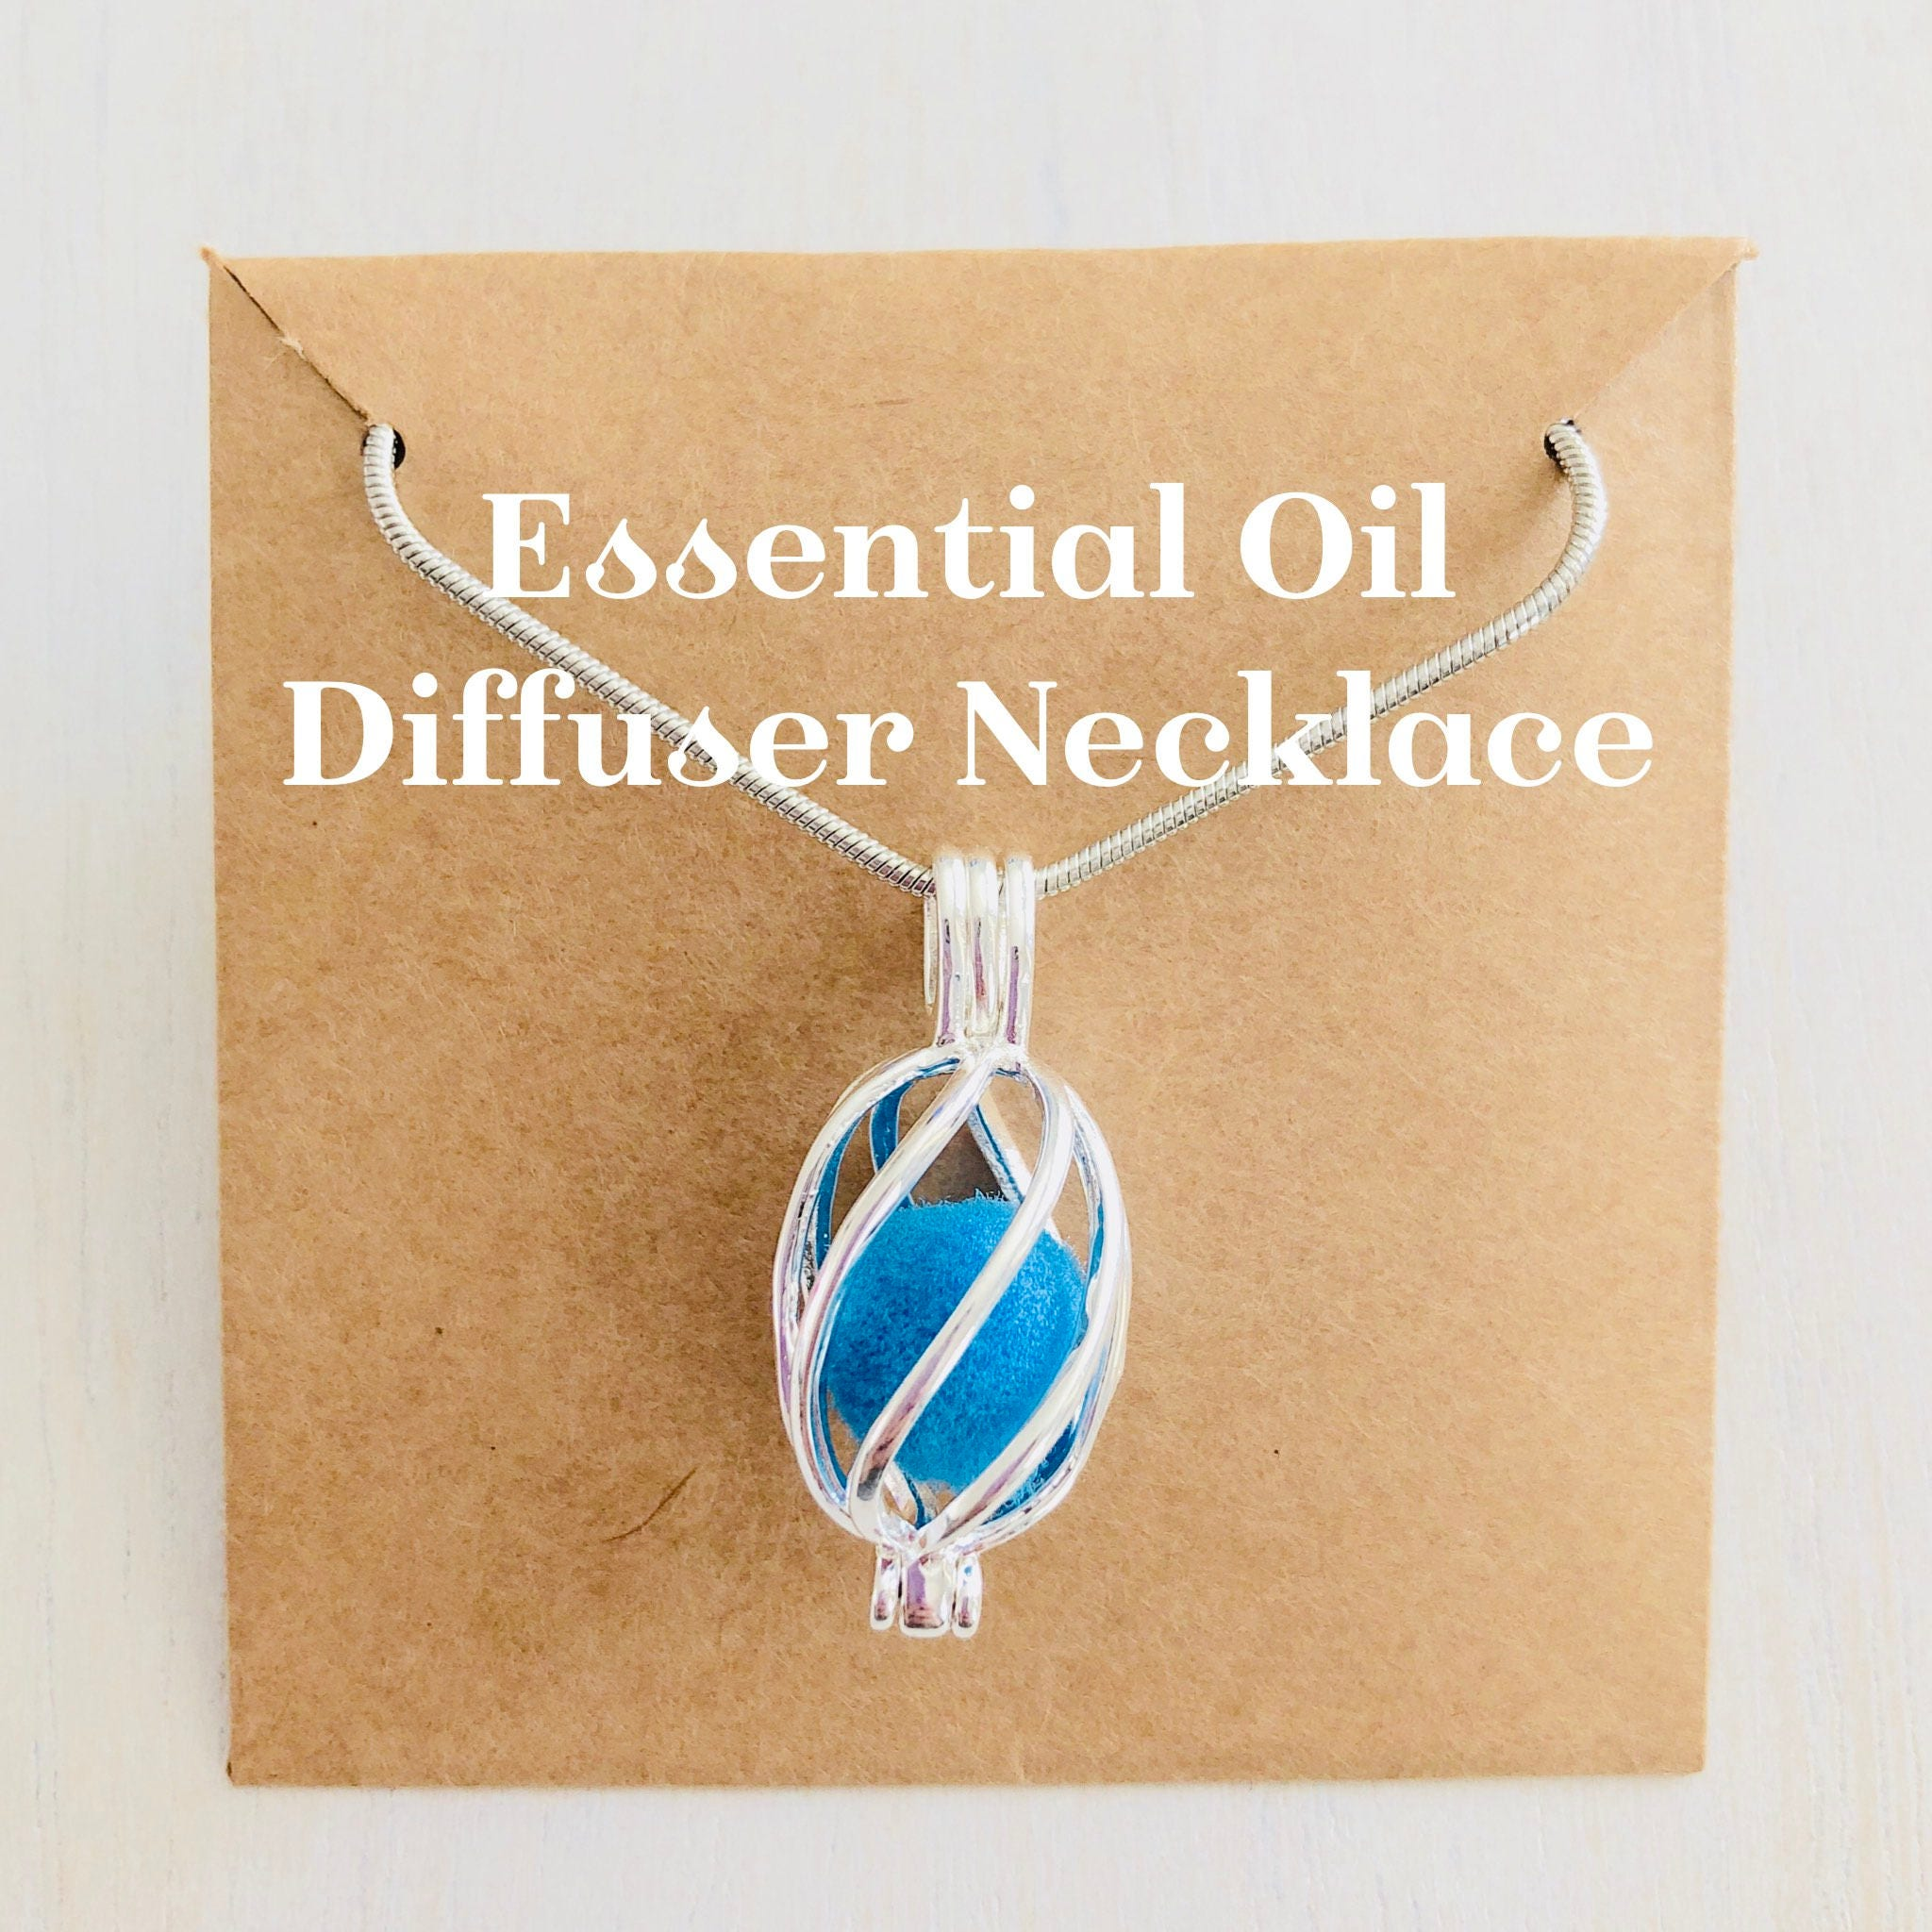 jewelry hand il products natural breathe necklace diffuser oil essential healing stamped locket fullxfull